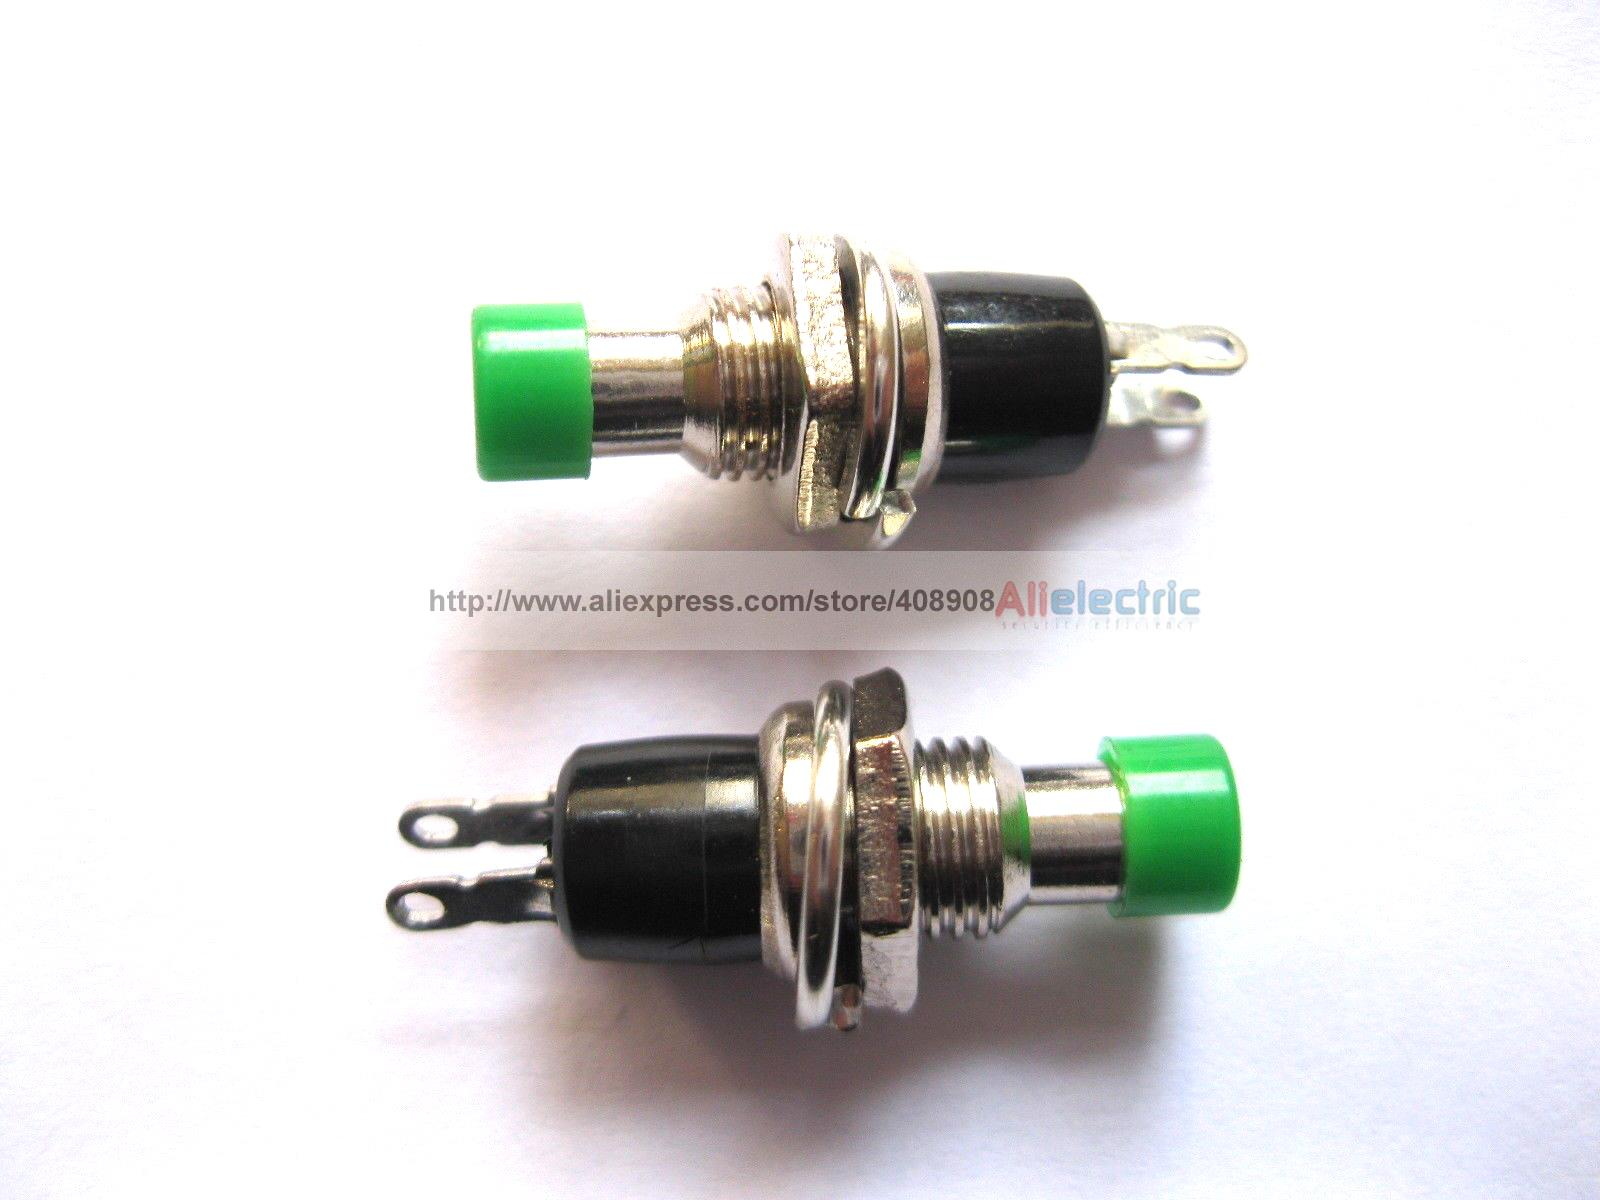 цена на 40 Pcs SPST Mini Push Momentary Switch Green Cap 250V 3A 125V 6A Nomal Off